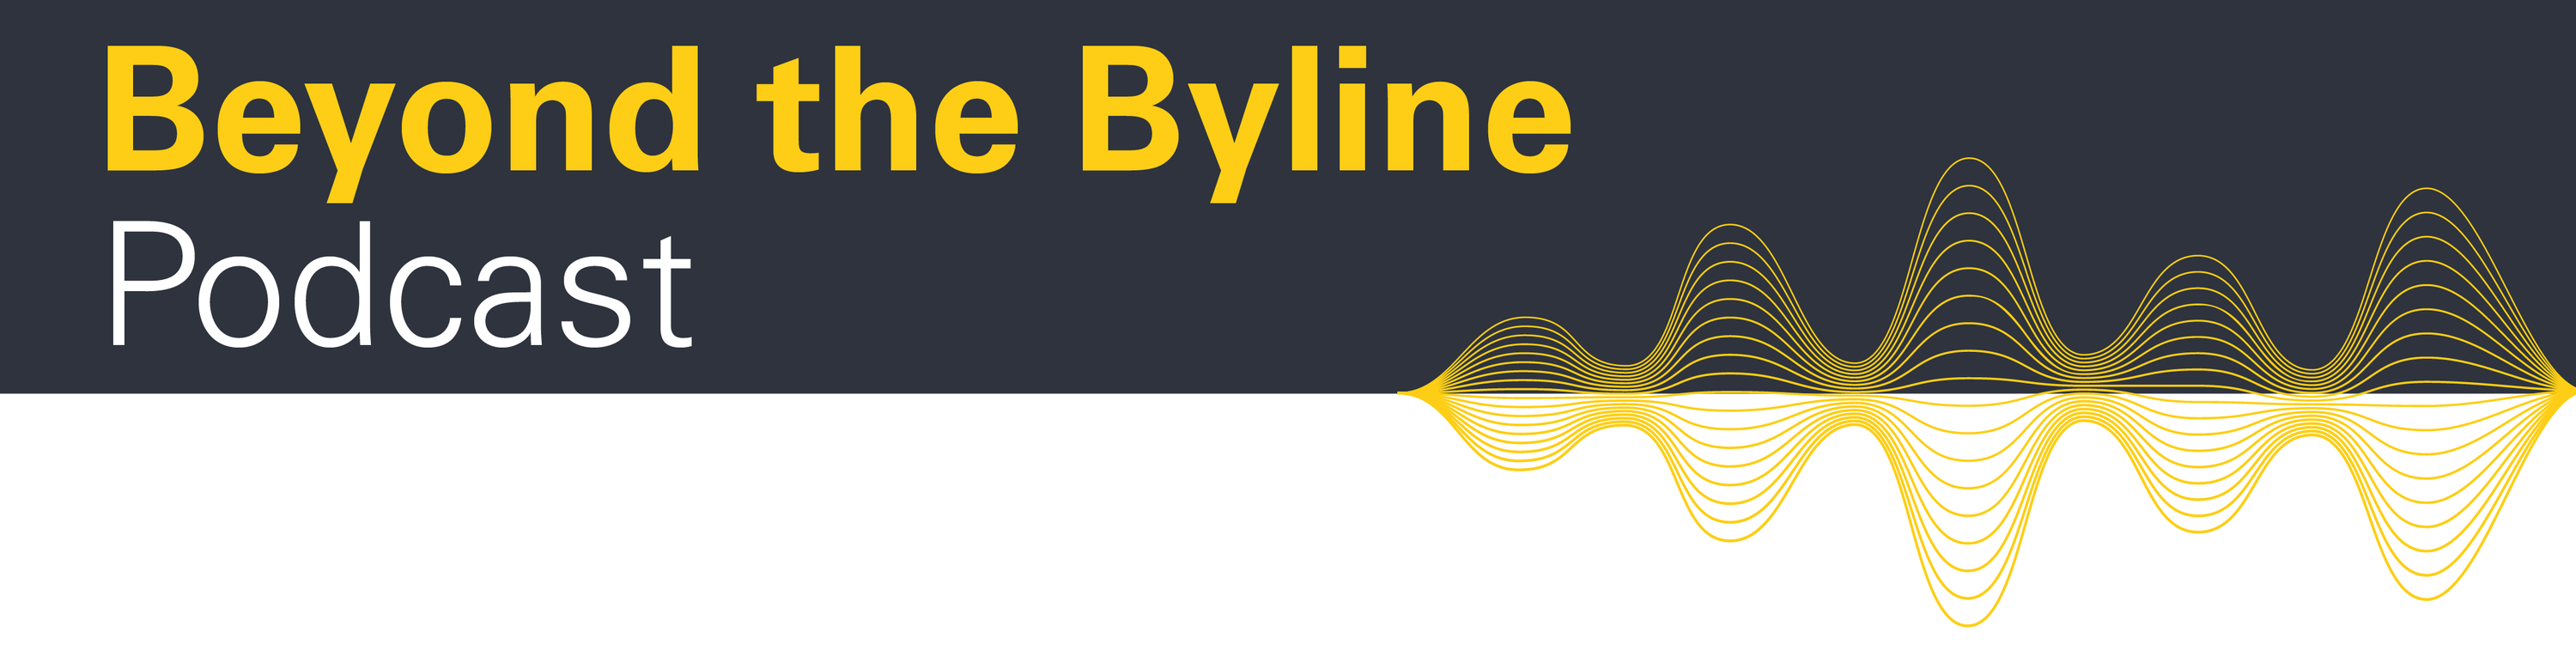 Beyond the Byline Section Header Image